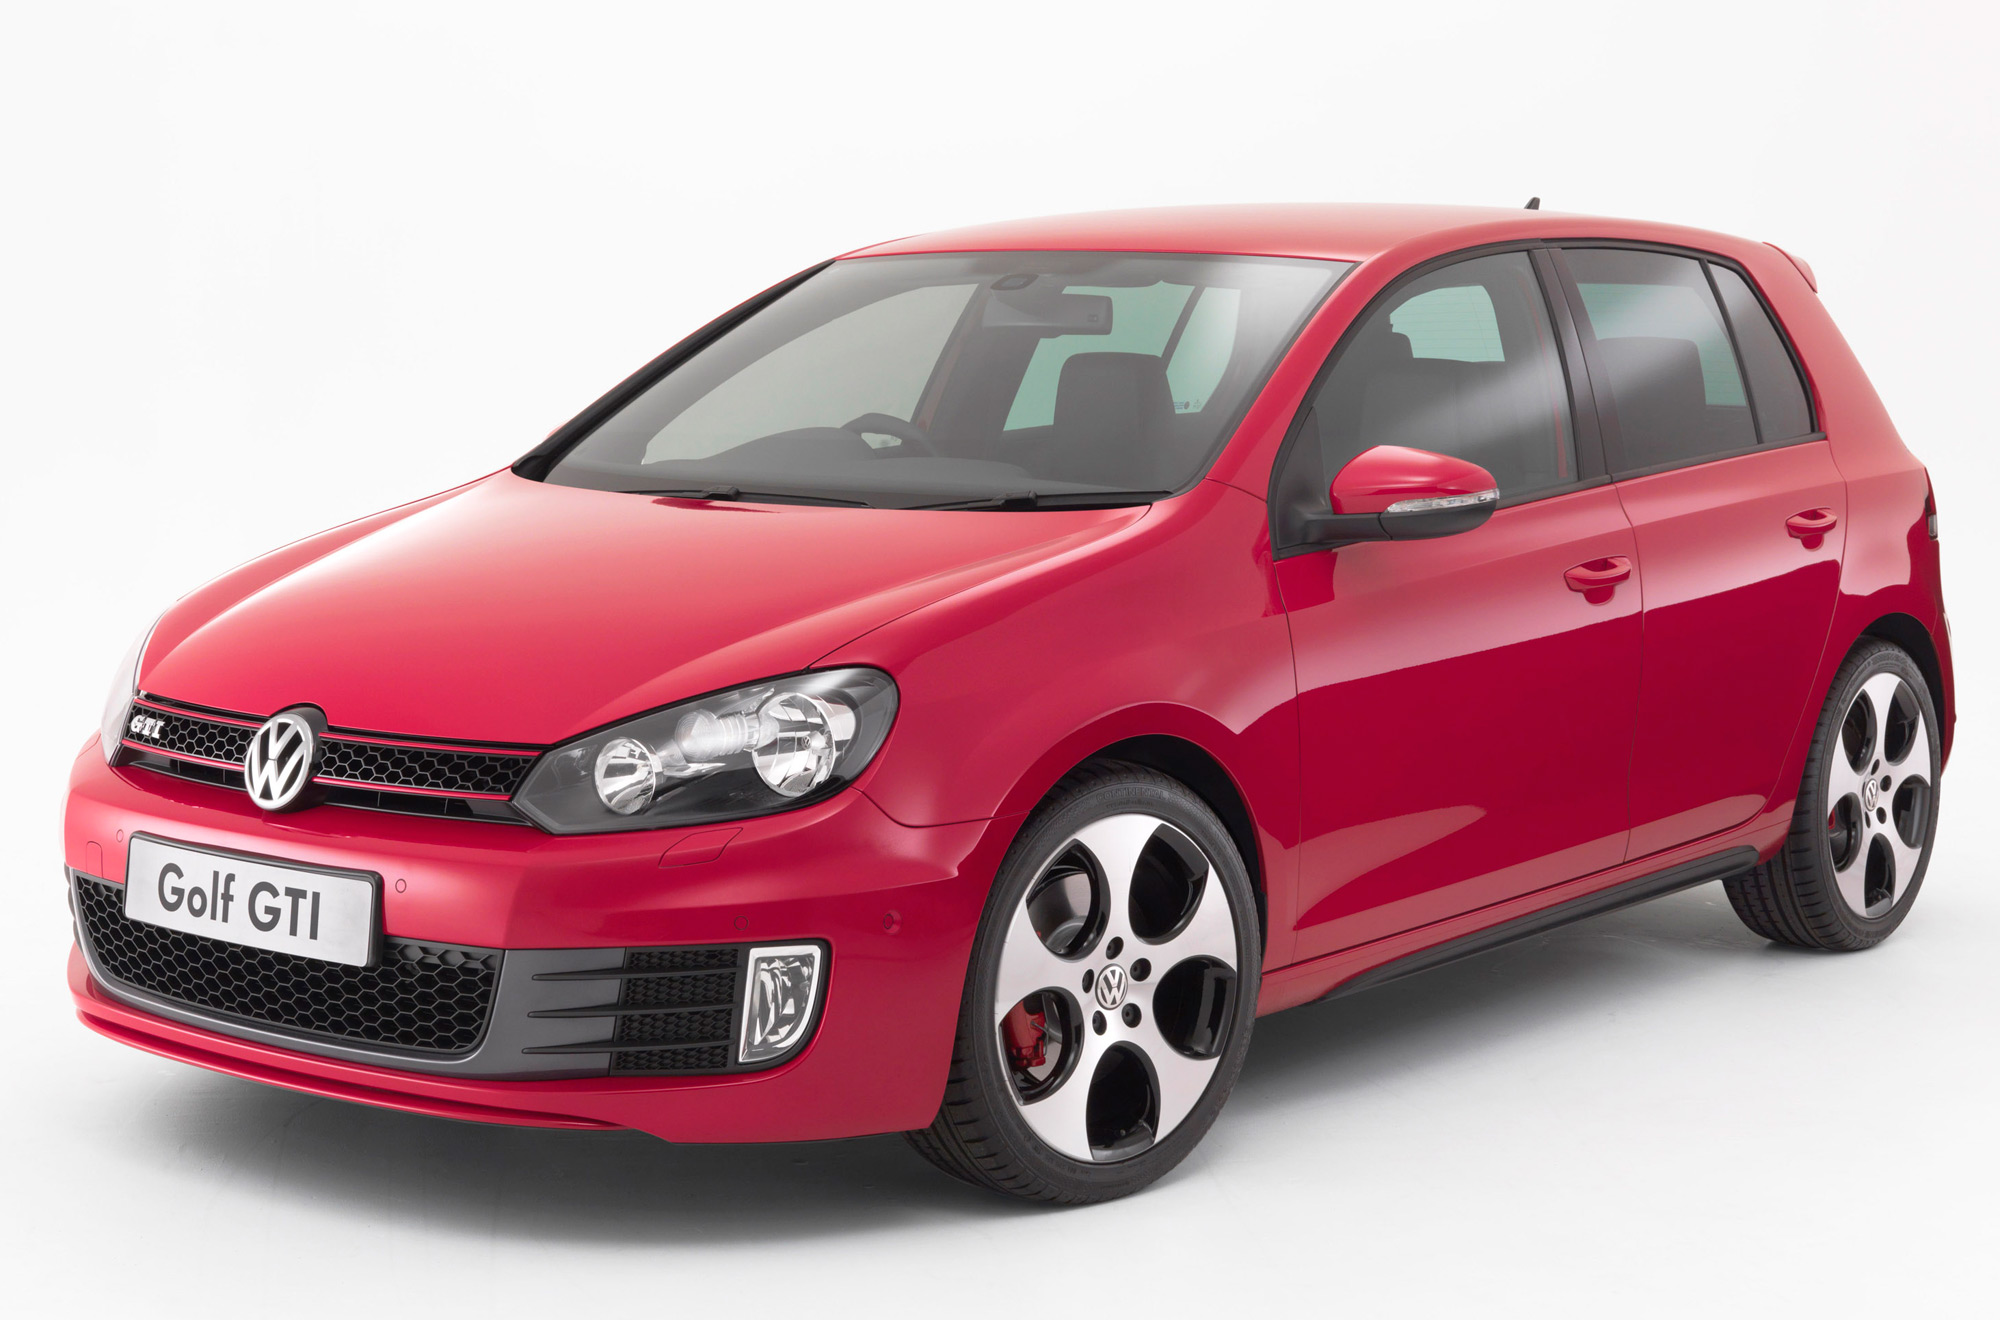 new golf gti australian details released. Black Bedroom Furniture Sets. Home Design Ideas